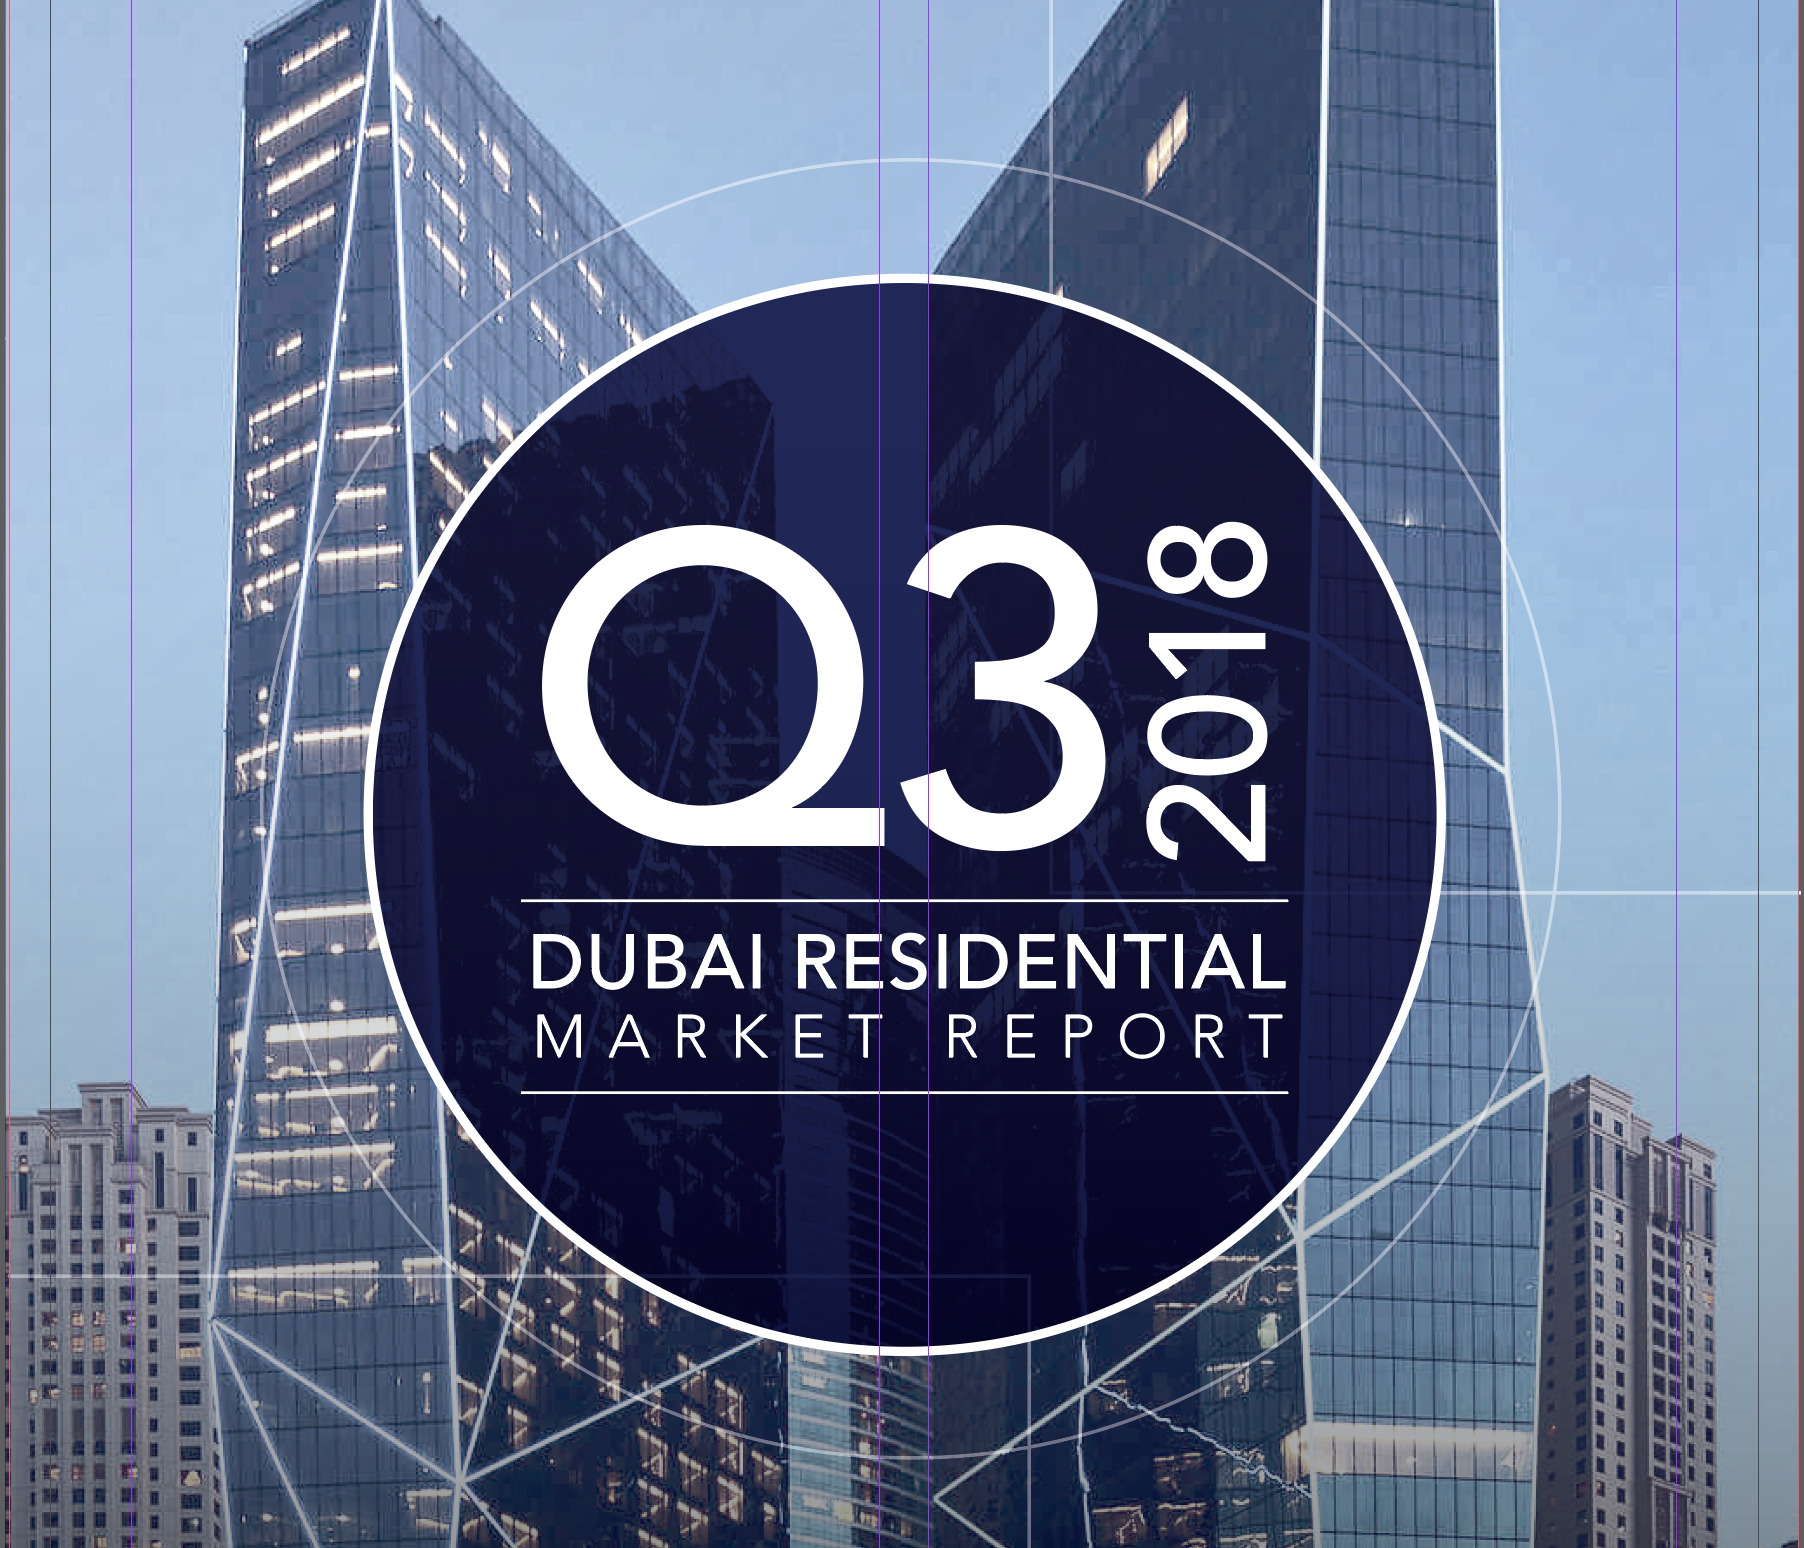 Q3 2018 Dubai Residential Market Report Special Edition